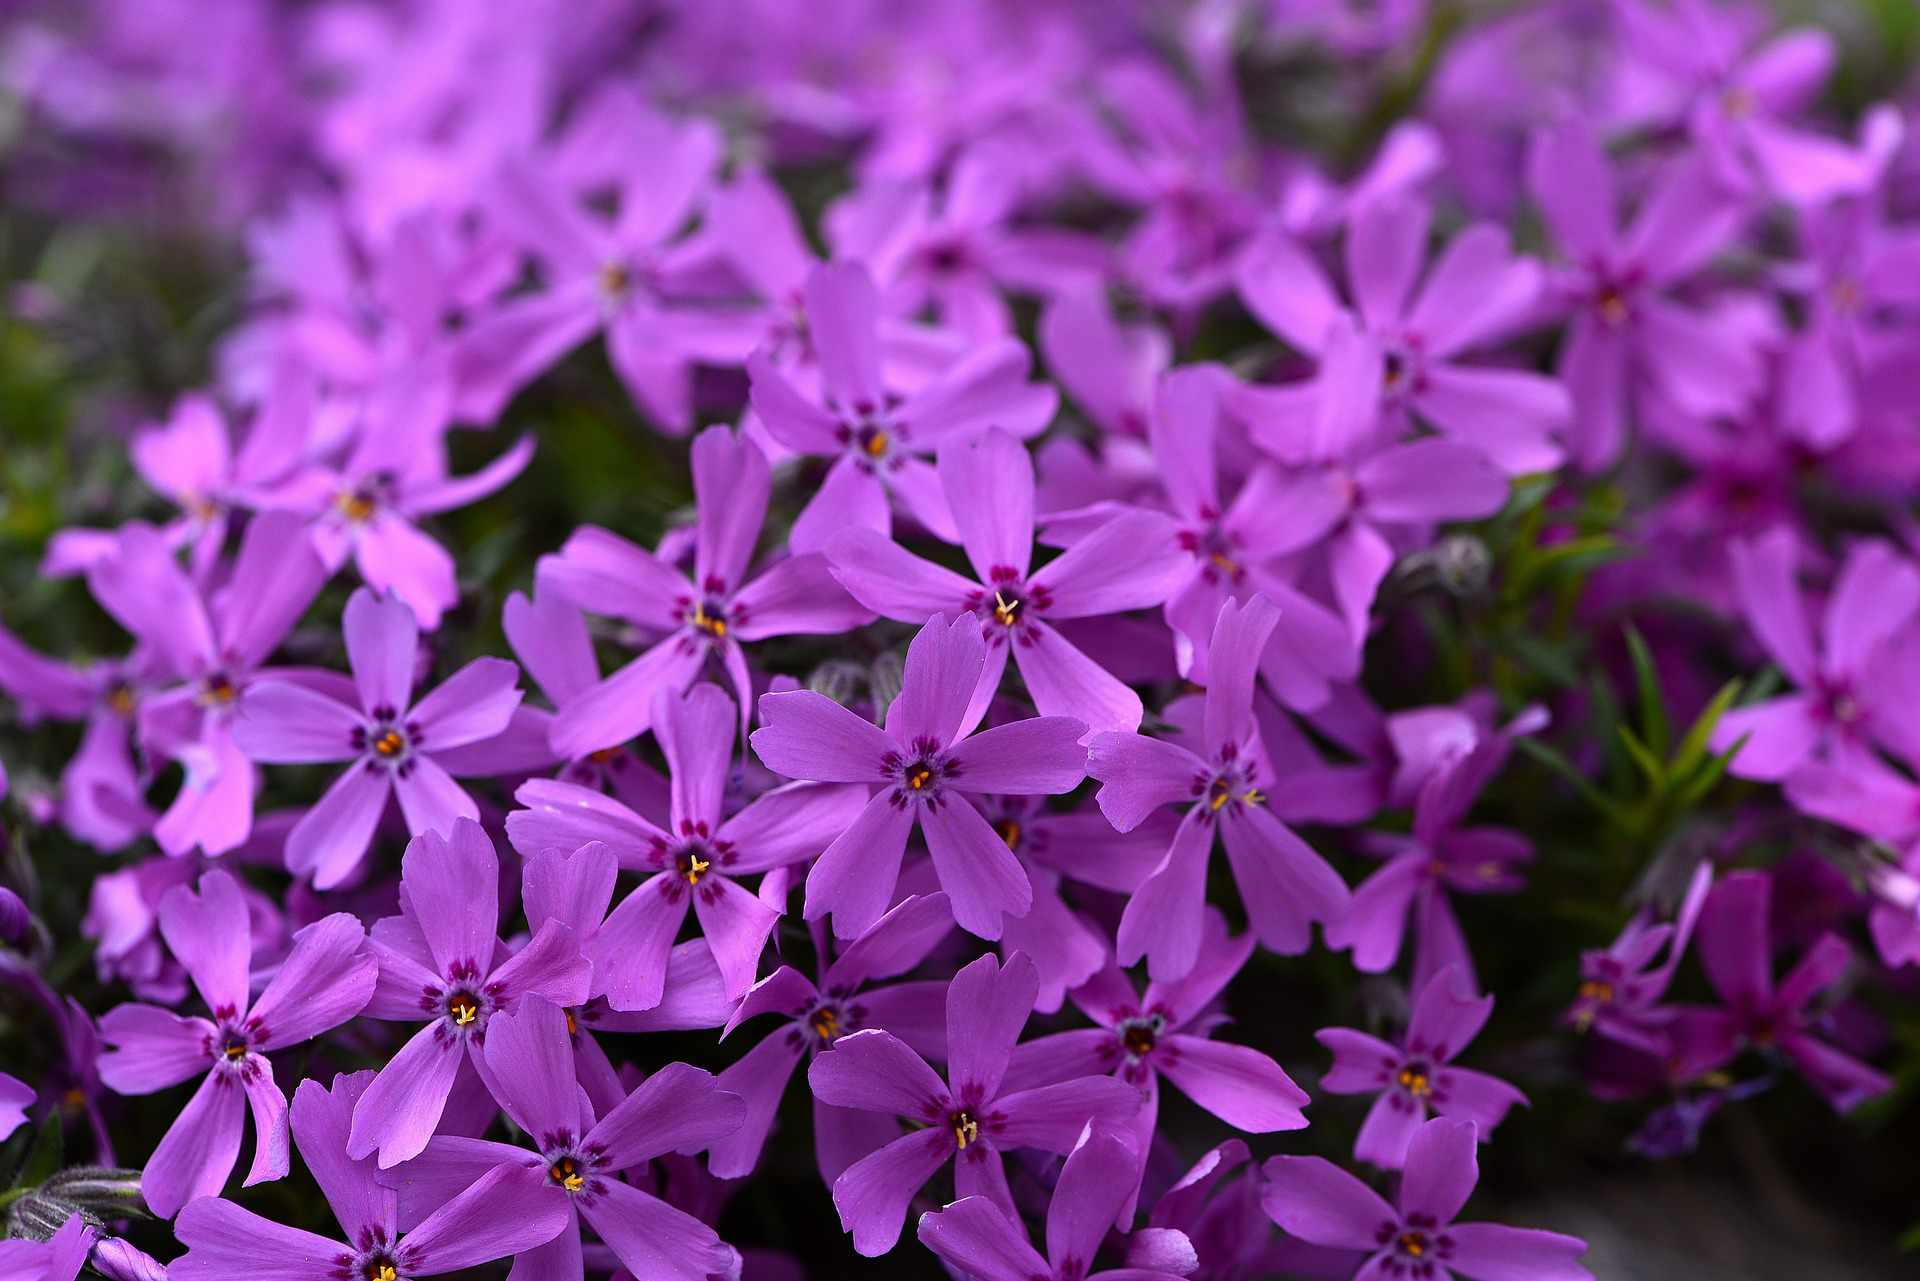 Phlox flowering ground cover